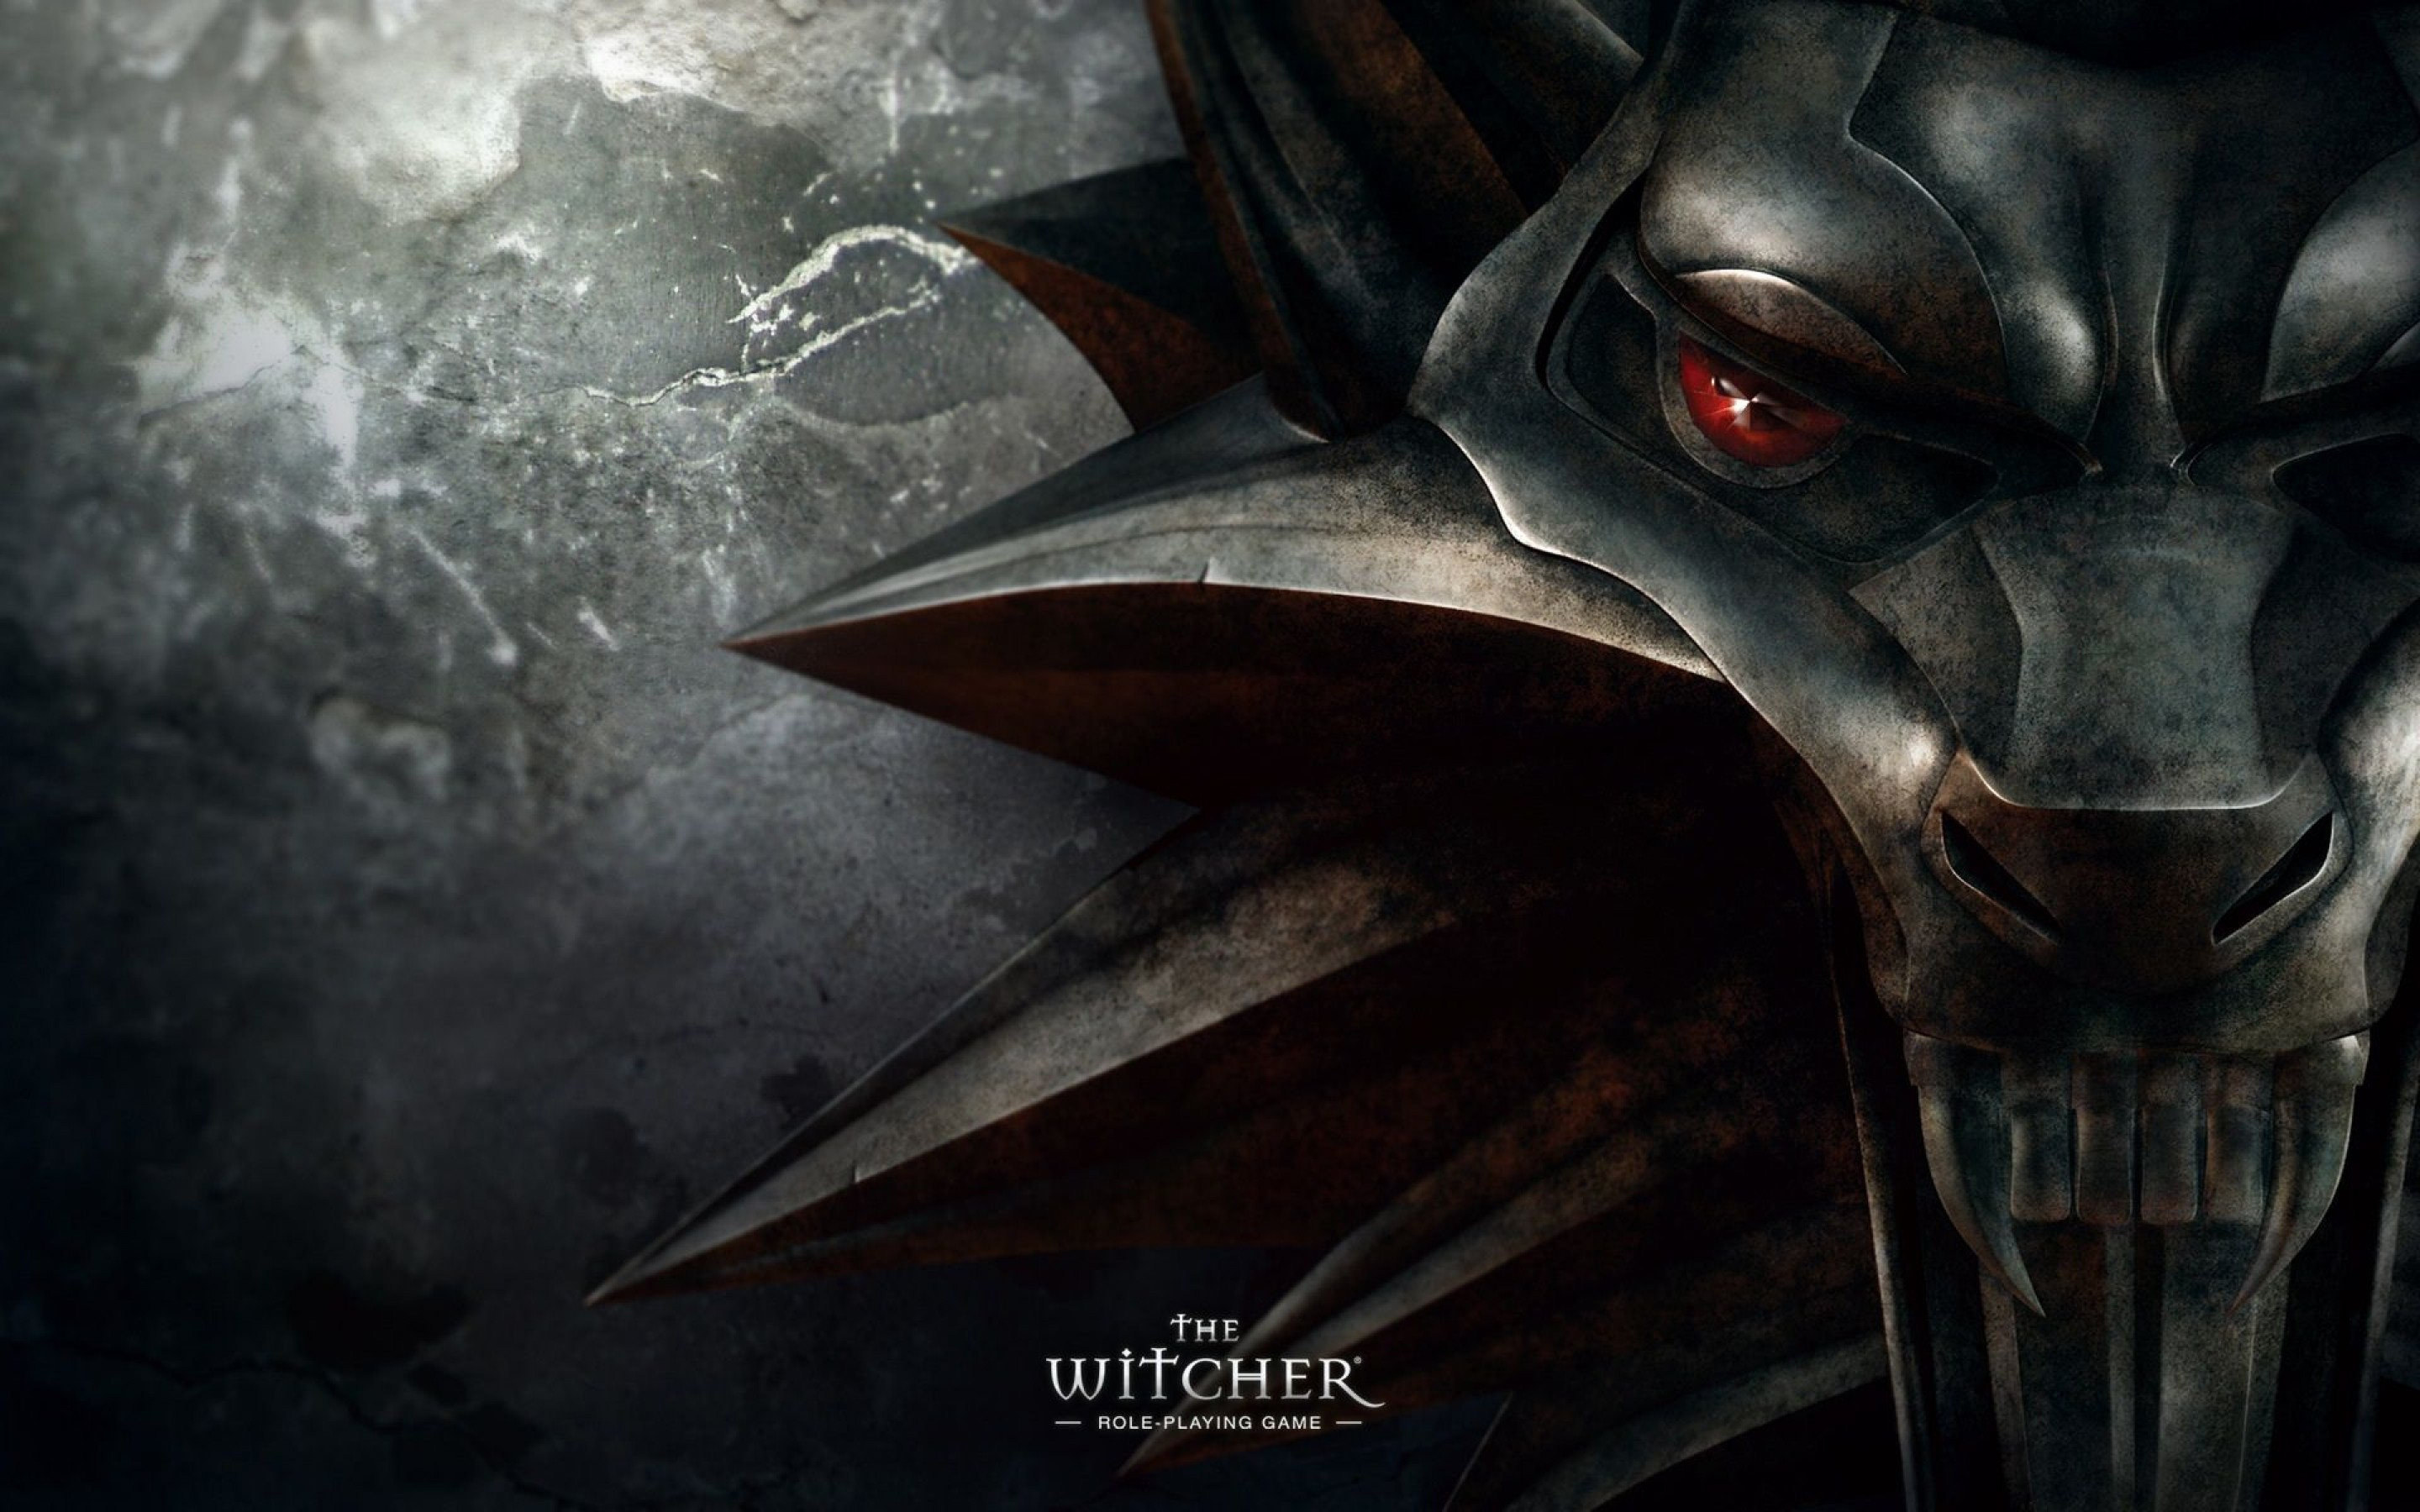 the witcher 3 wallpaper high definition high quality